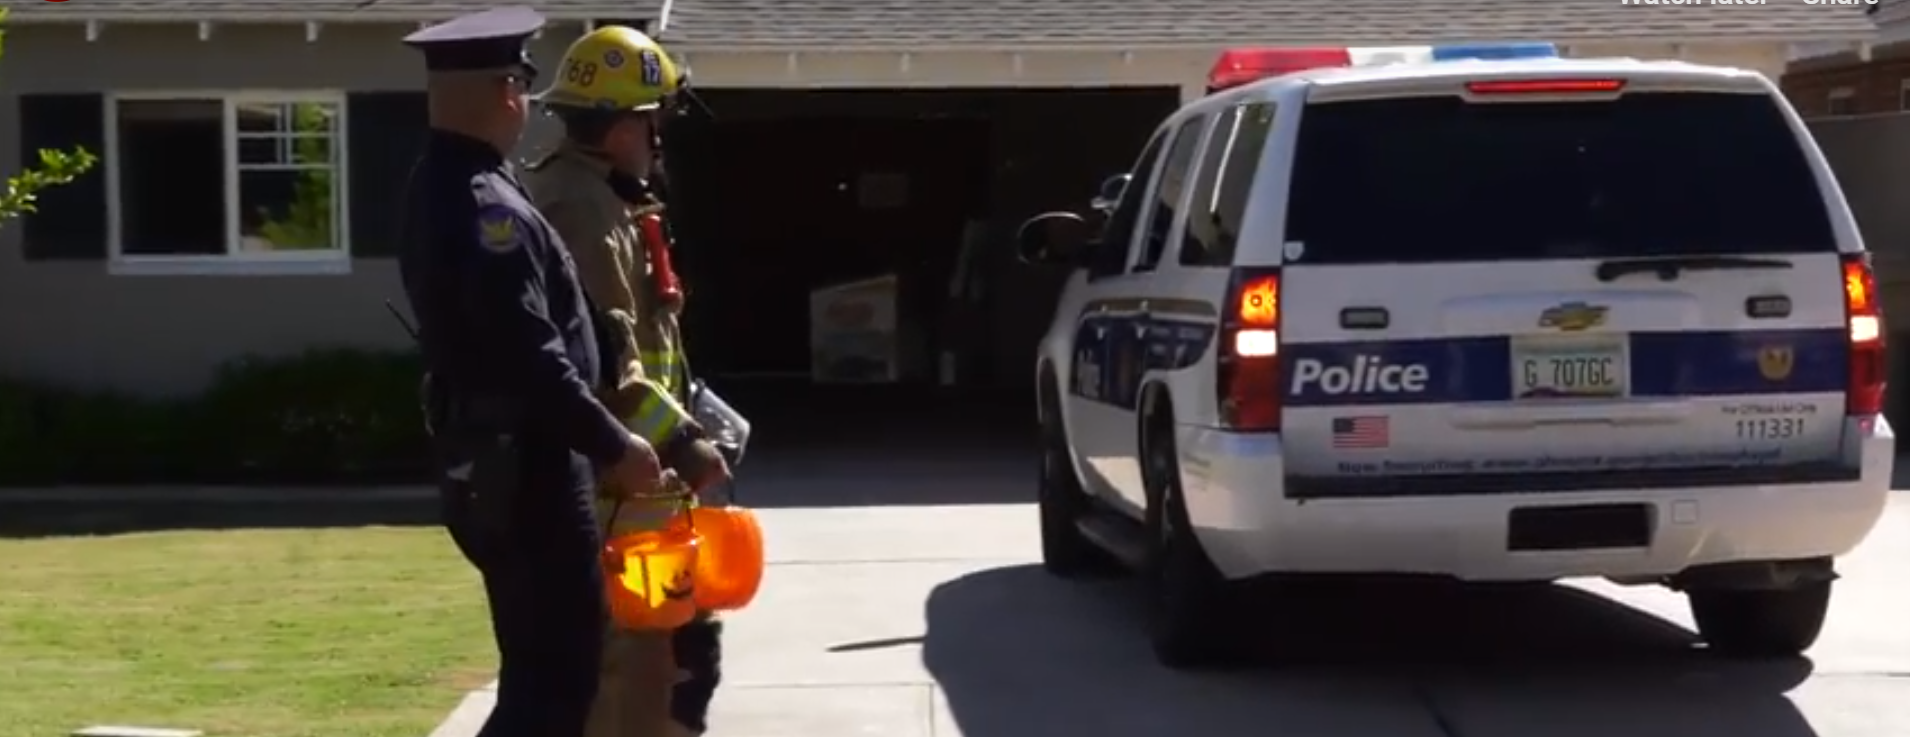 Phoenix Fire And Police Departments' Remind Families How To Keep Children Safe During Halloween. Photo Courtesy Phoenix Fire And Police Departments